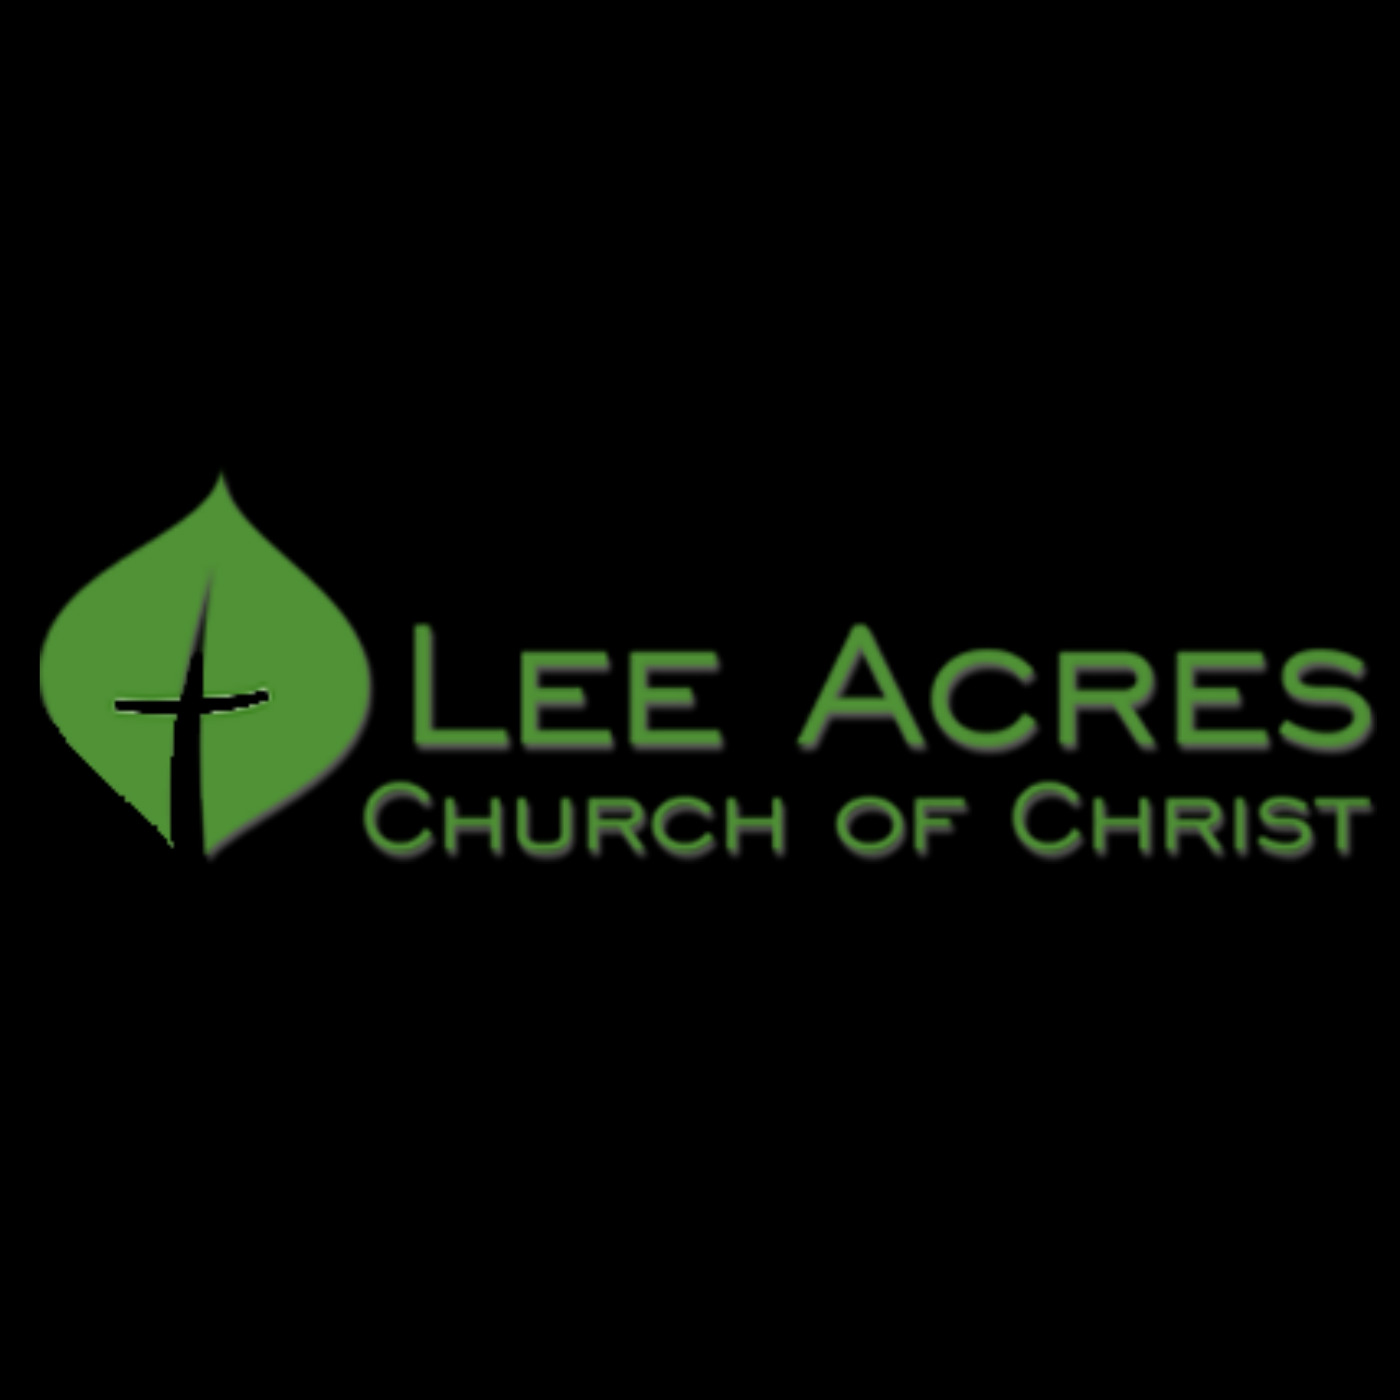 Lee Acres Church of Christ